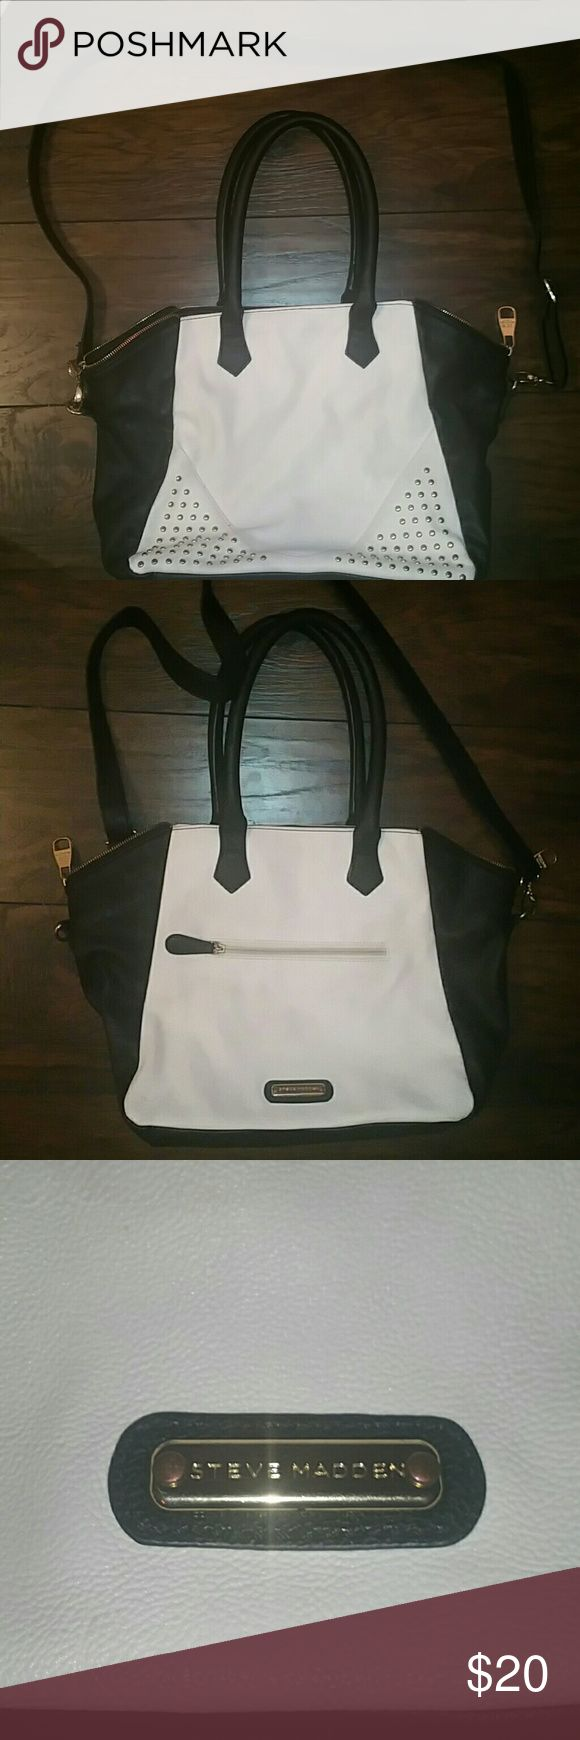 Steve Madden Purse Used Steve Madden purse. Can sell on mercar Steve Madden Bags